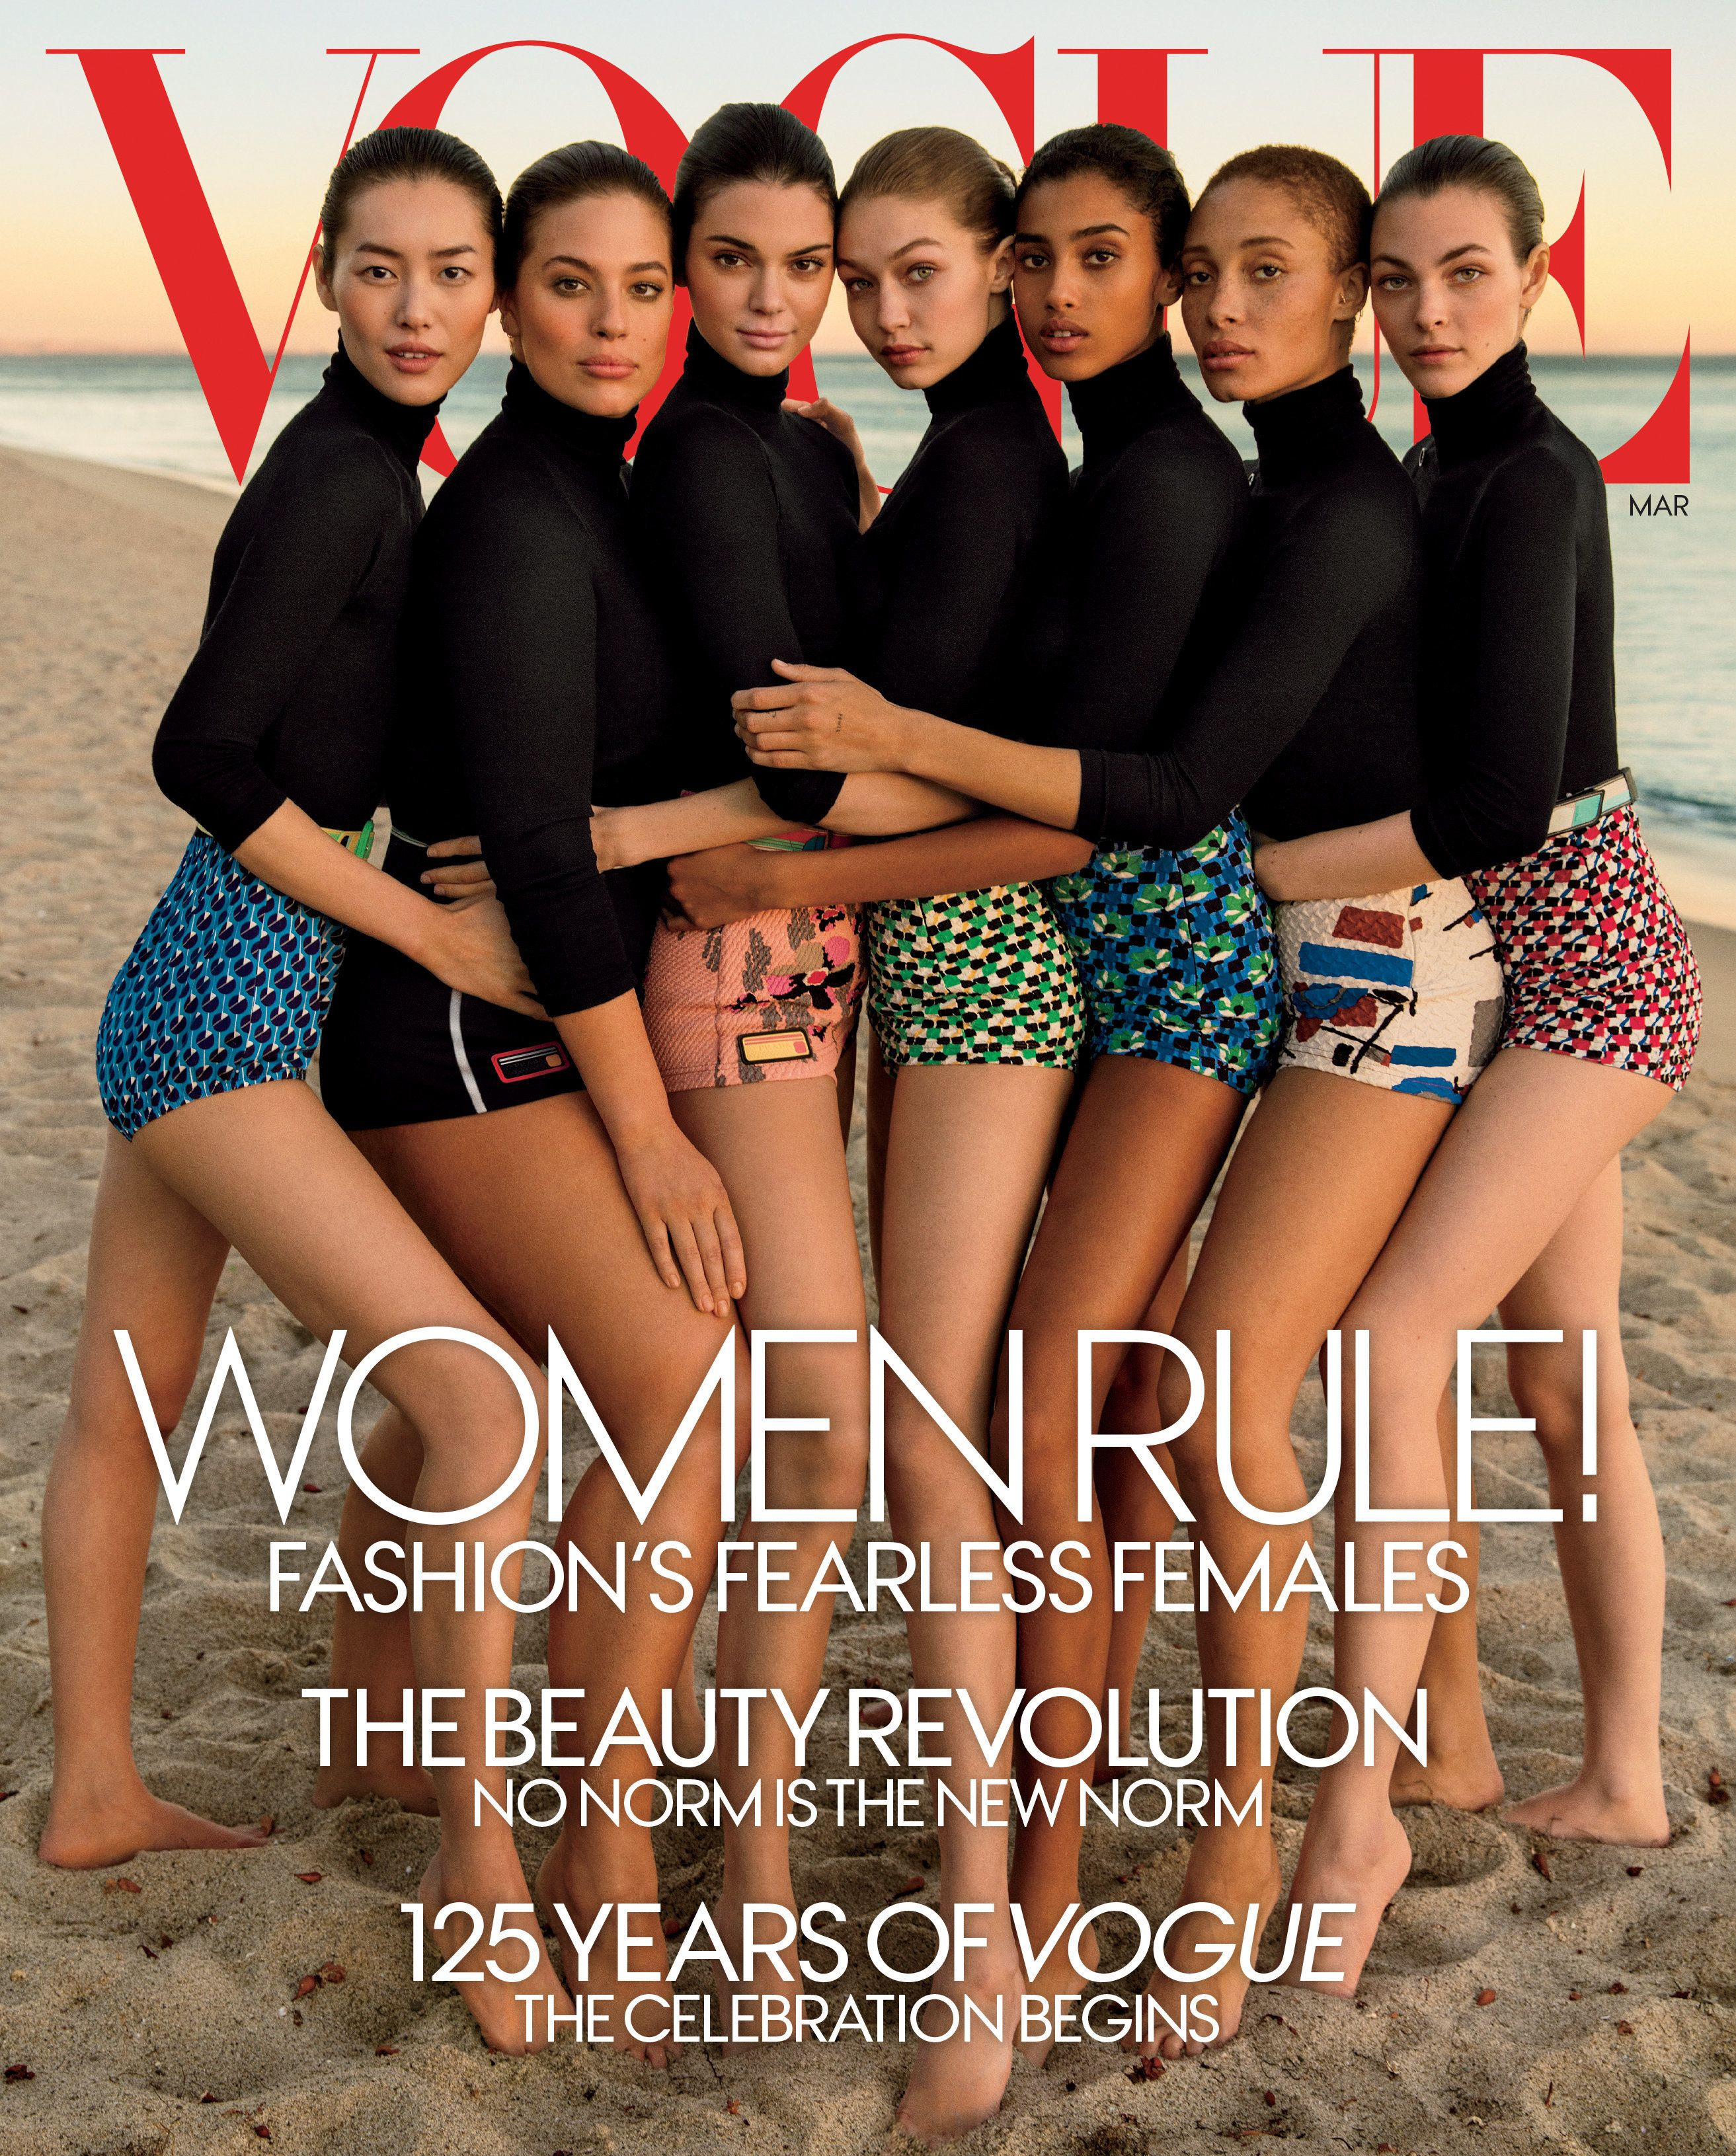 Vogue's March 2017 cover photo.